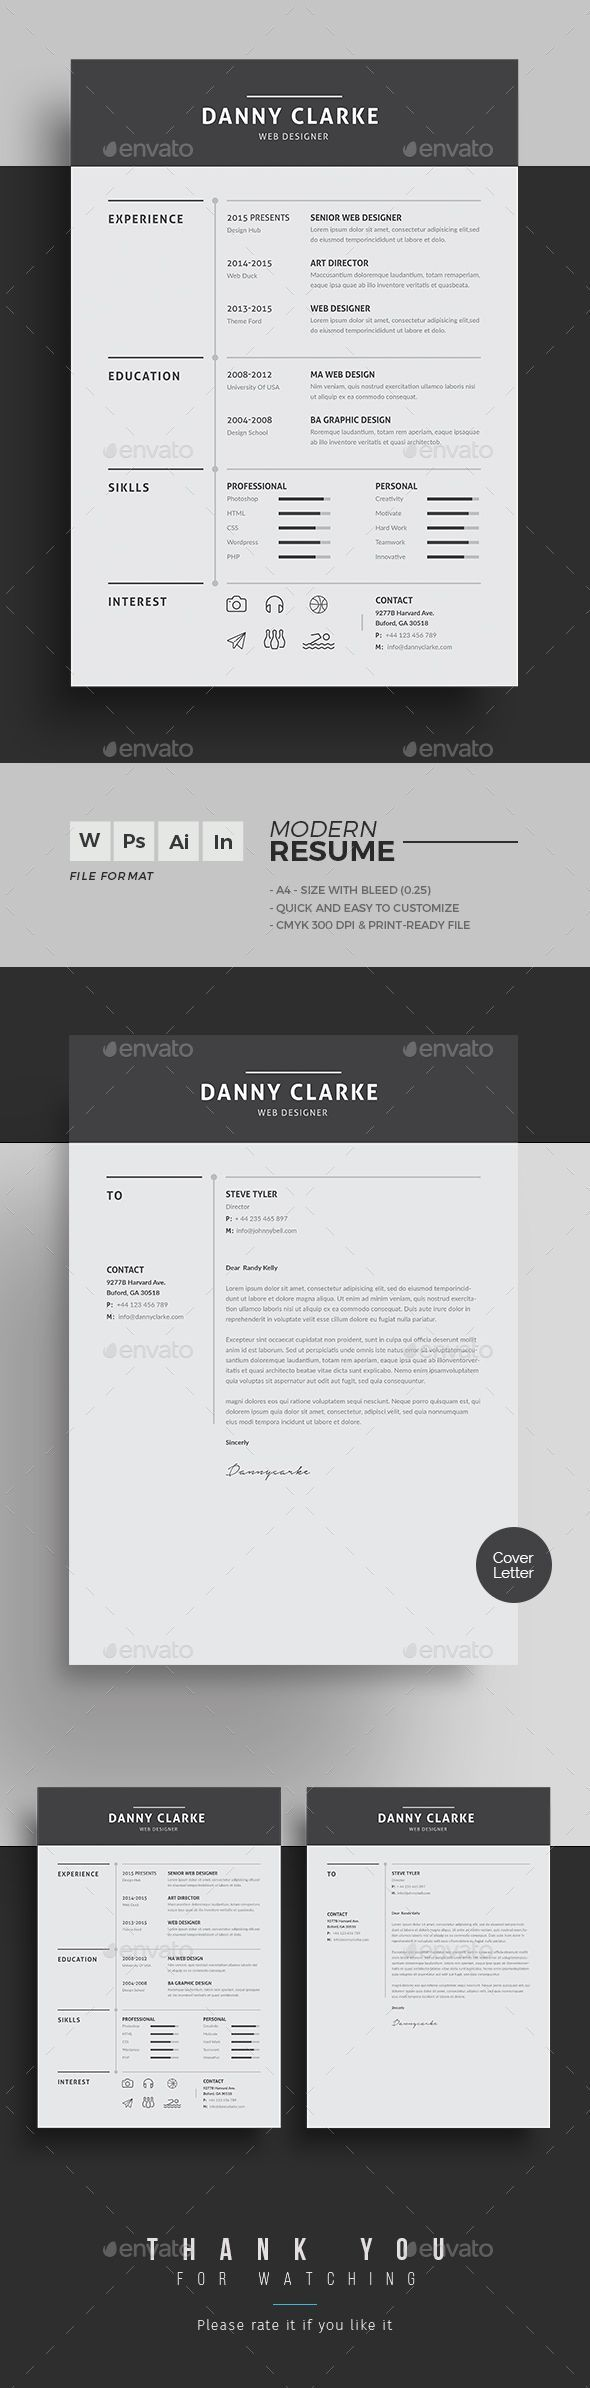 Simple & Clean PSD Resume Template  Download https://graphicriver.net/item/resume/19241400?ref=themedevisers